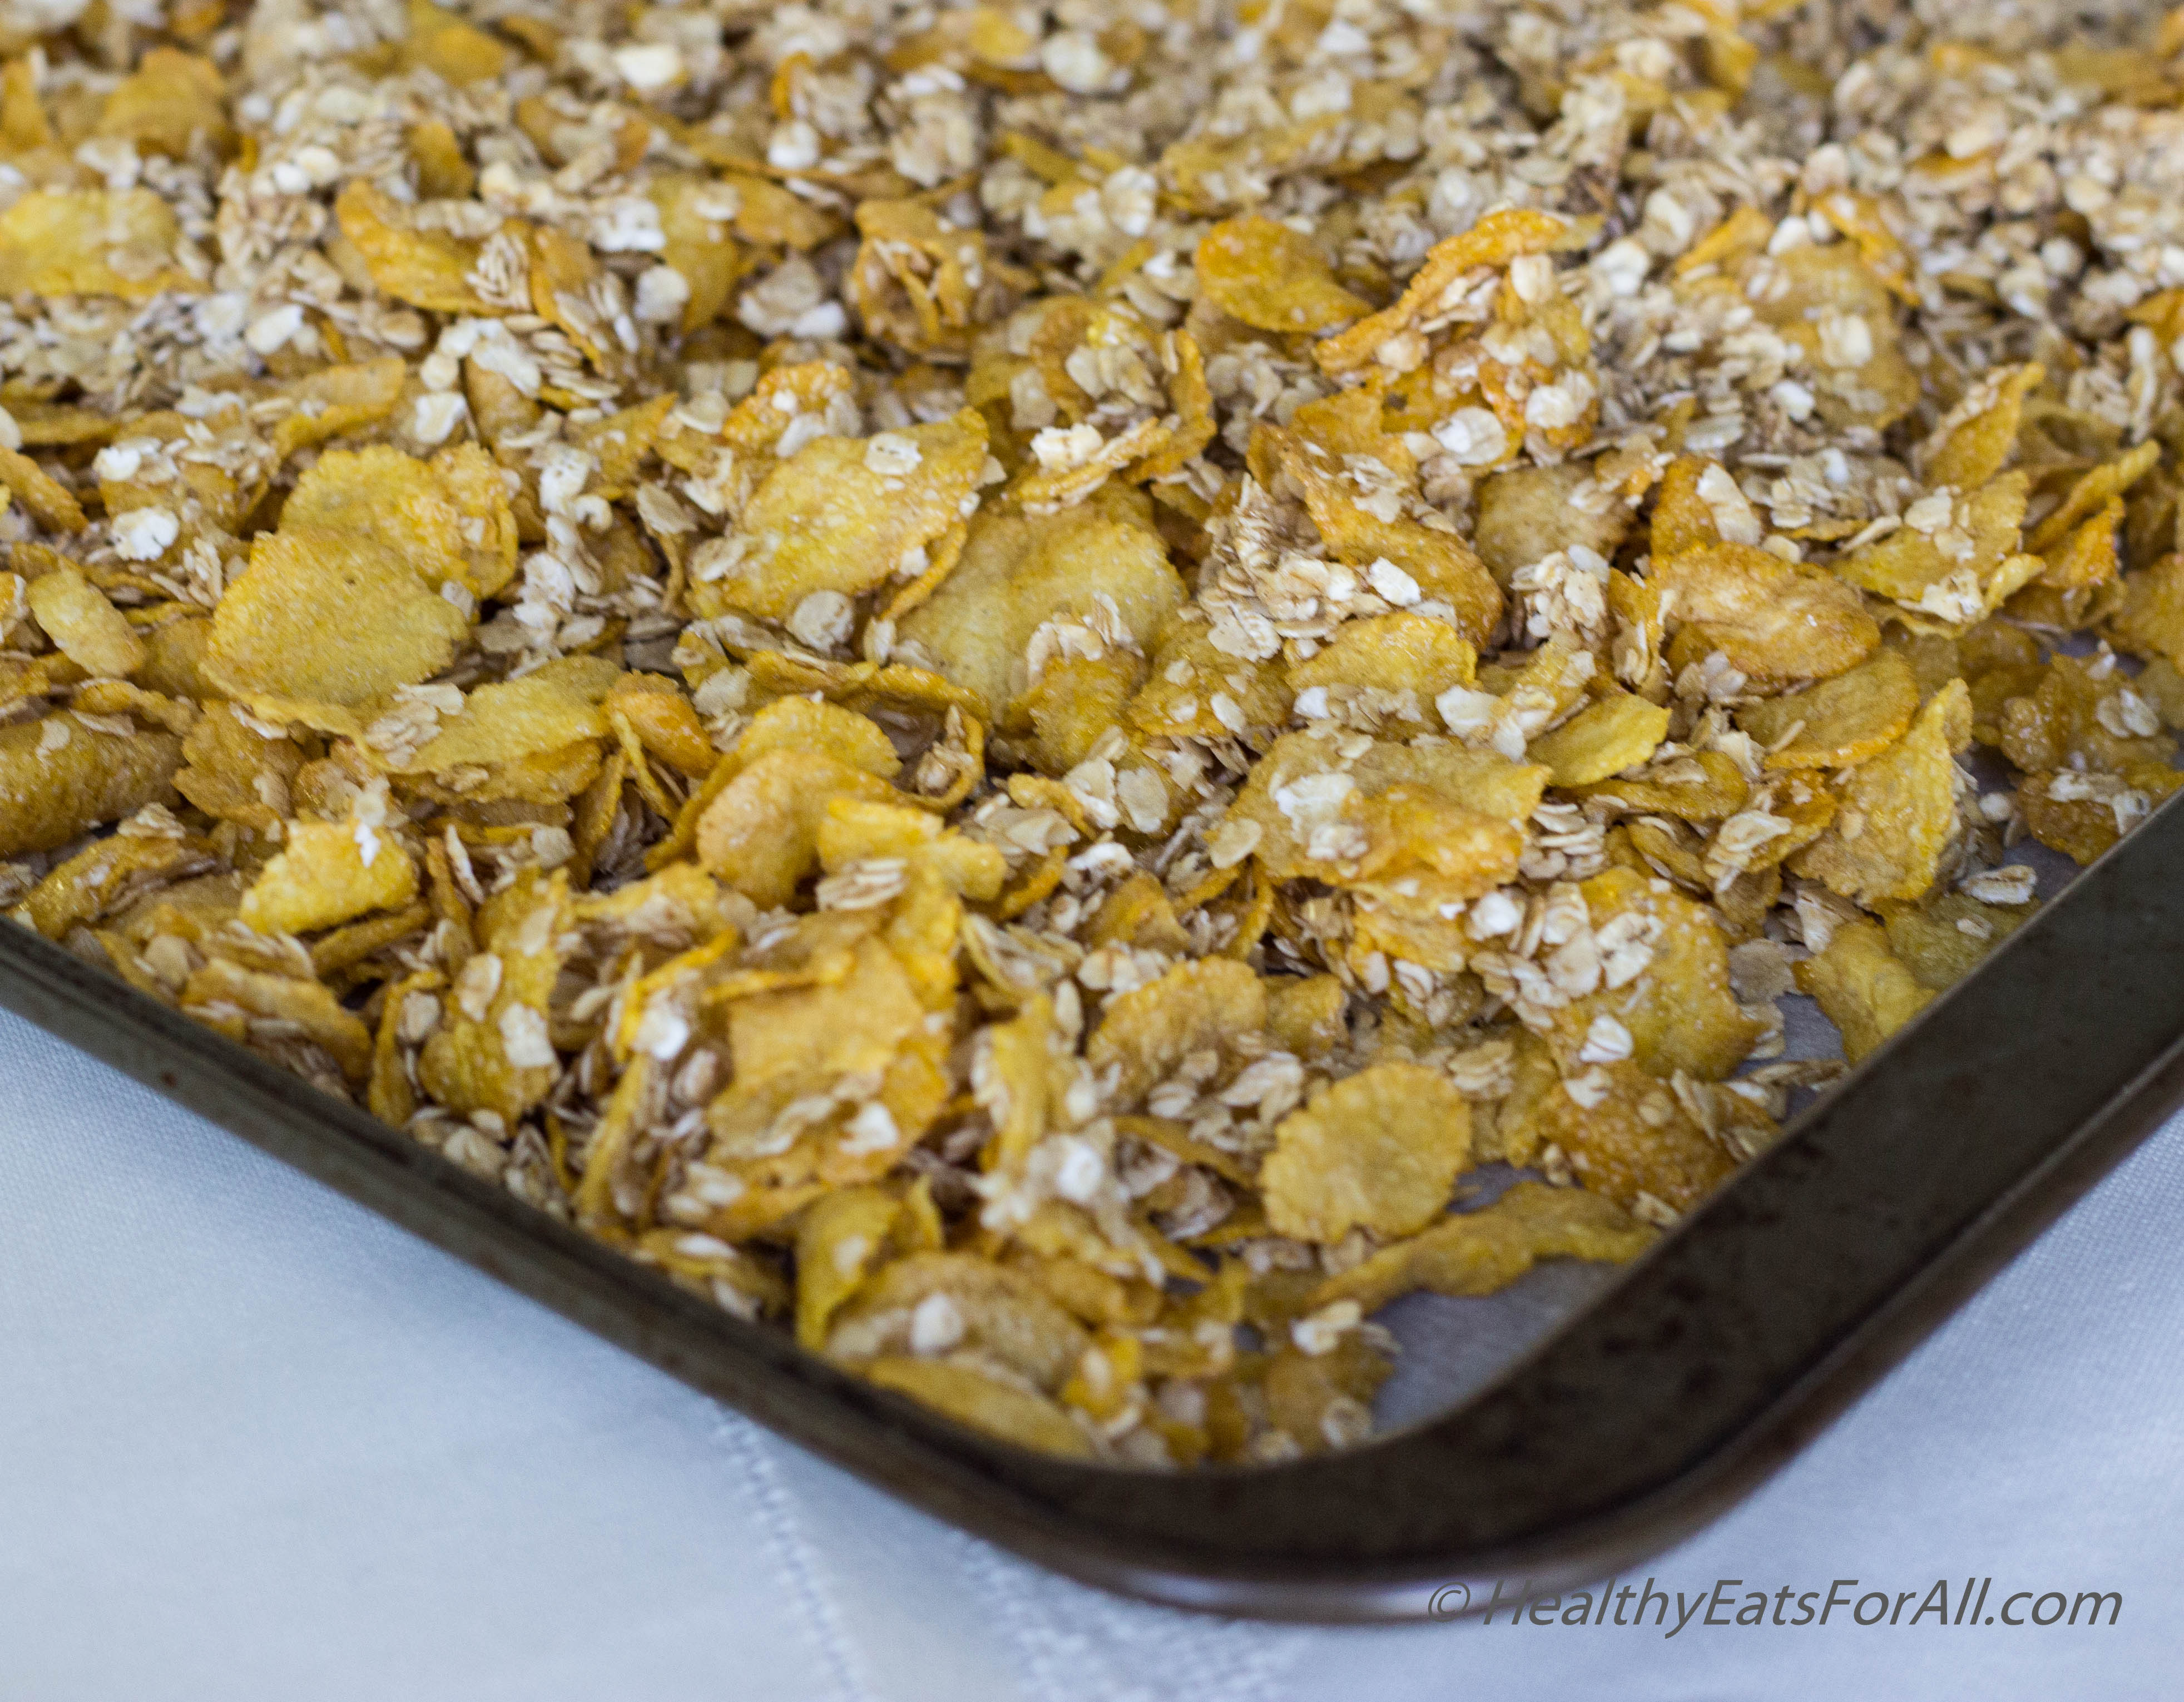 Homemade honey bunches of oats cereal healthy eats for all homemade honey bunches of oats cereal 12 ccuart Choice Image